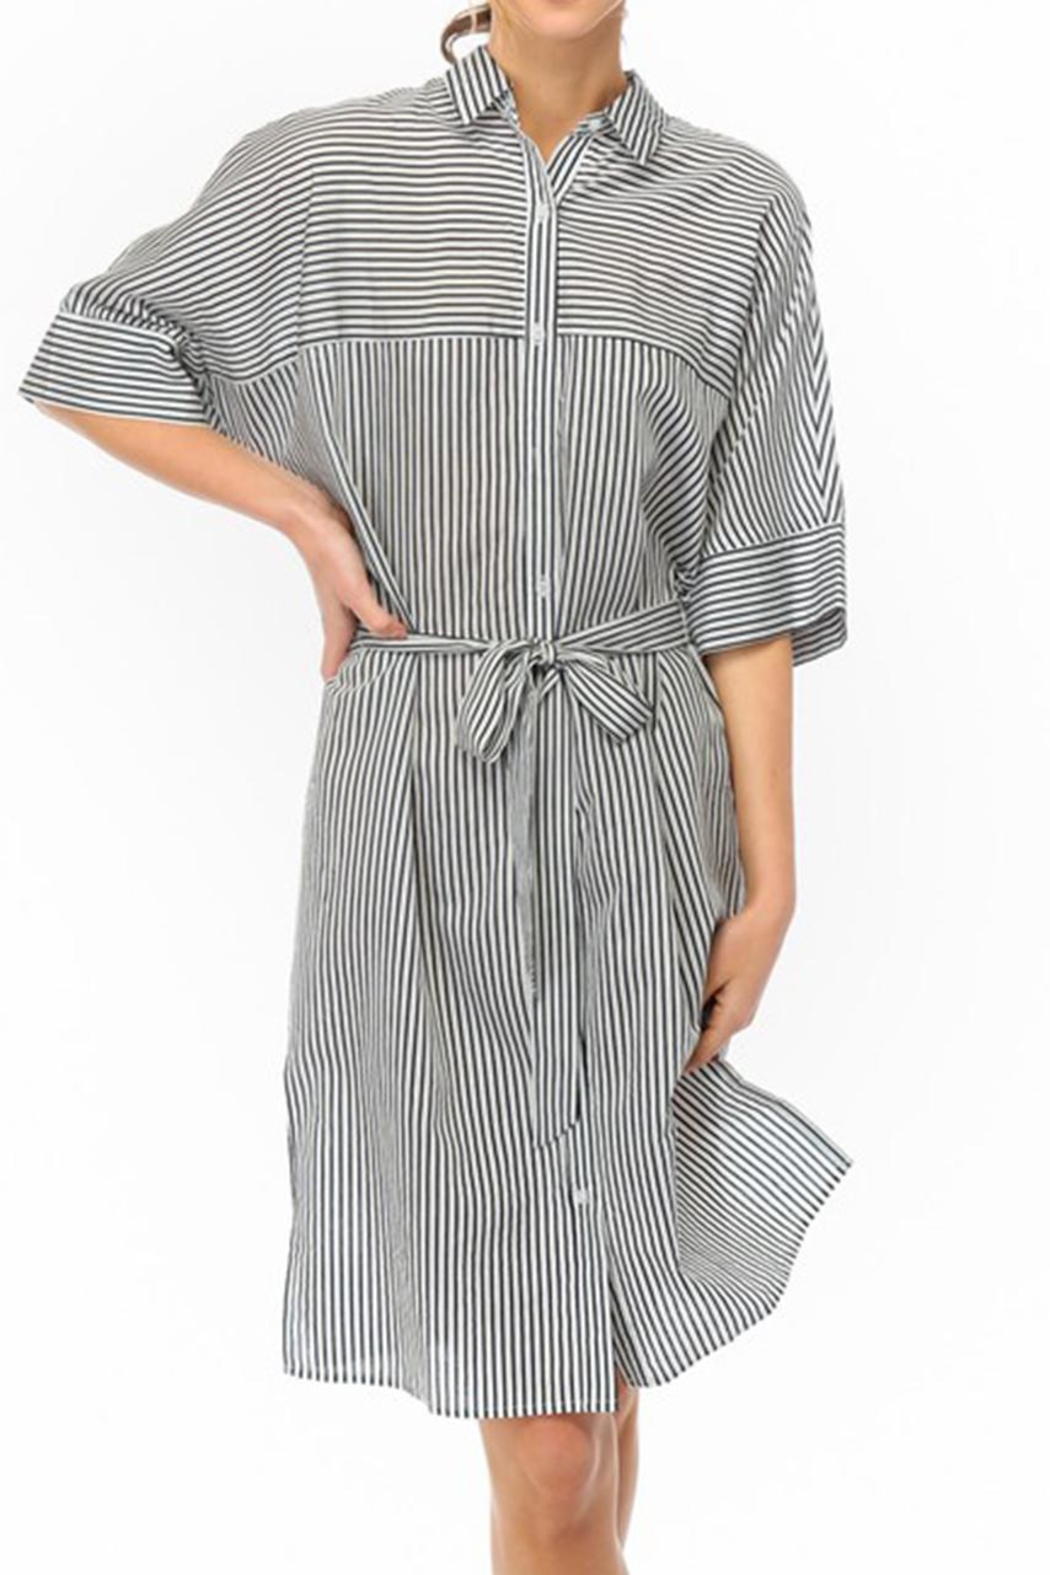 Lumiere Stripe Shirt Dress - Main Image